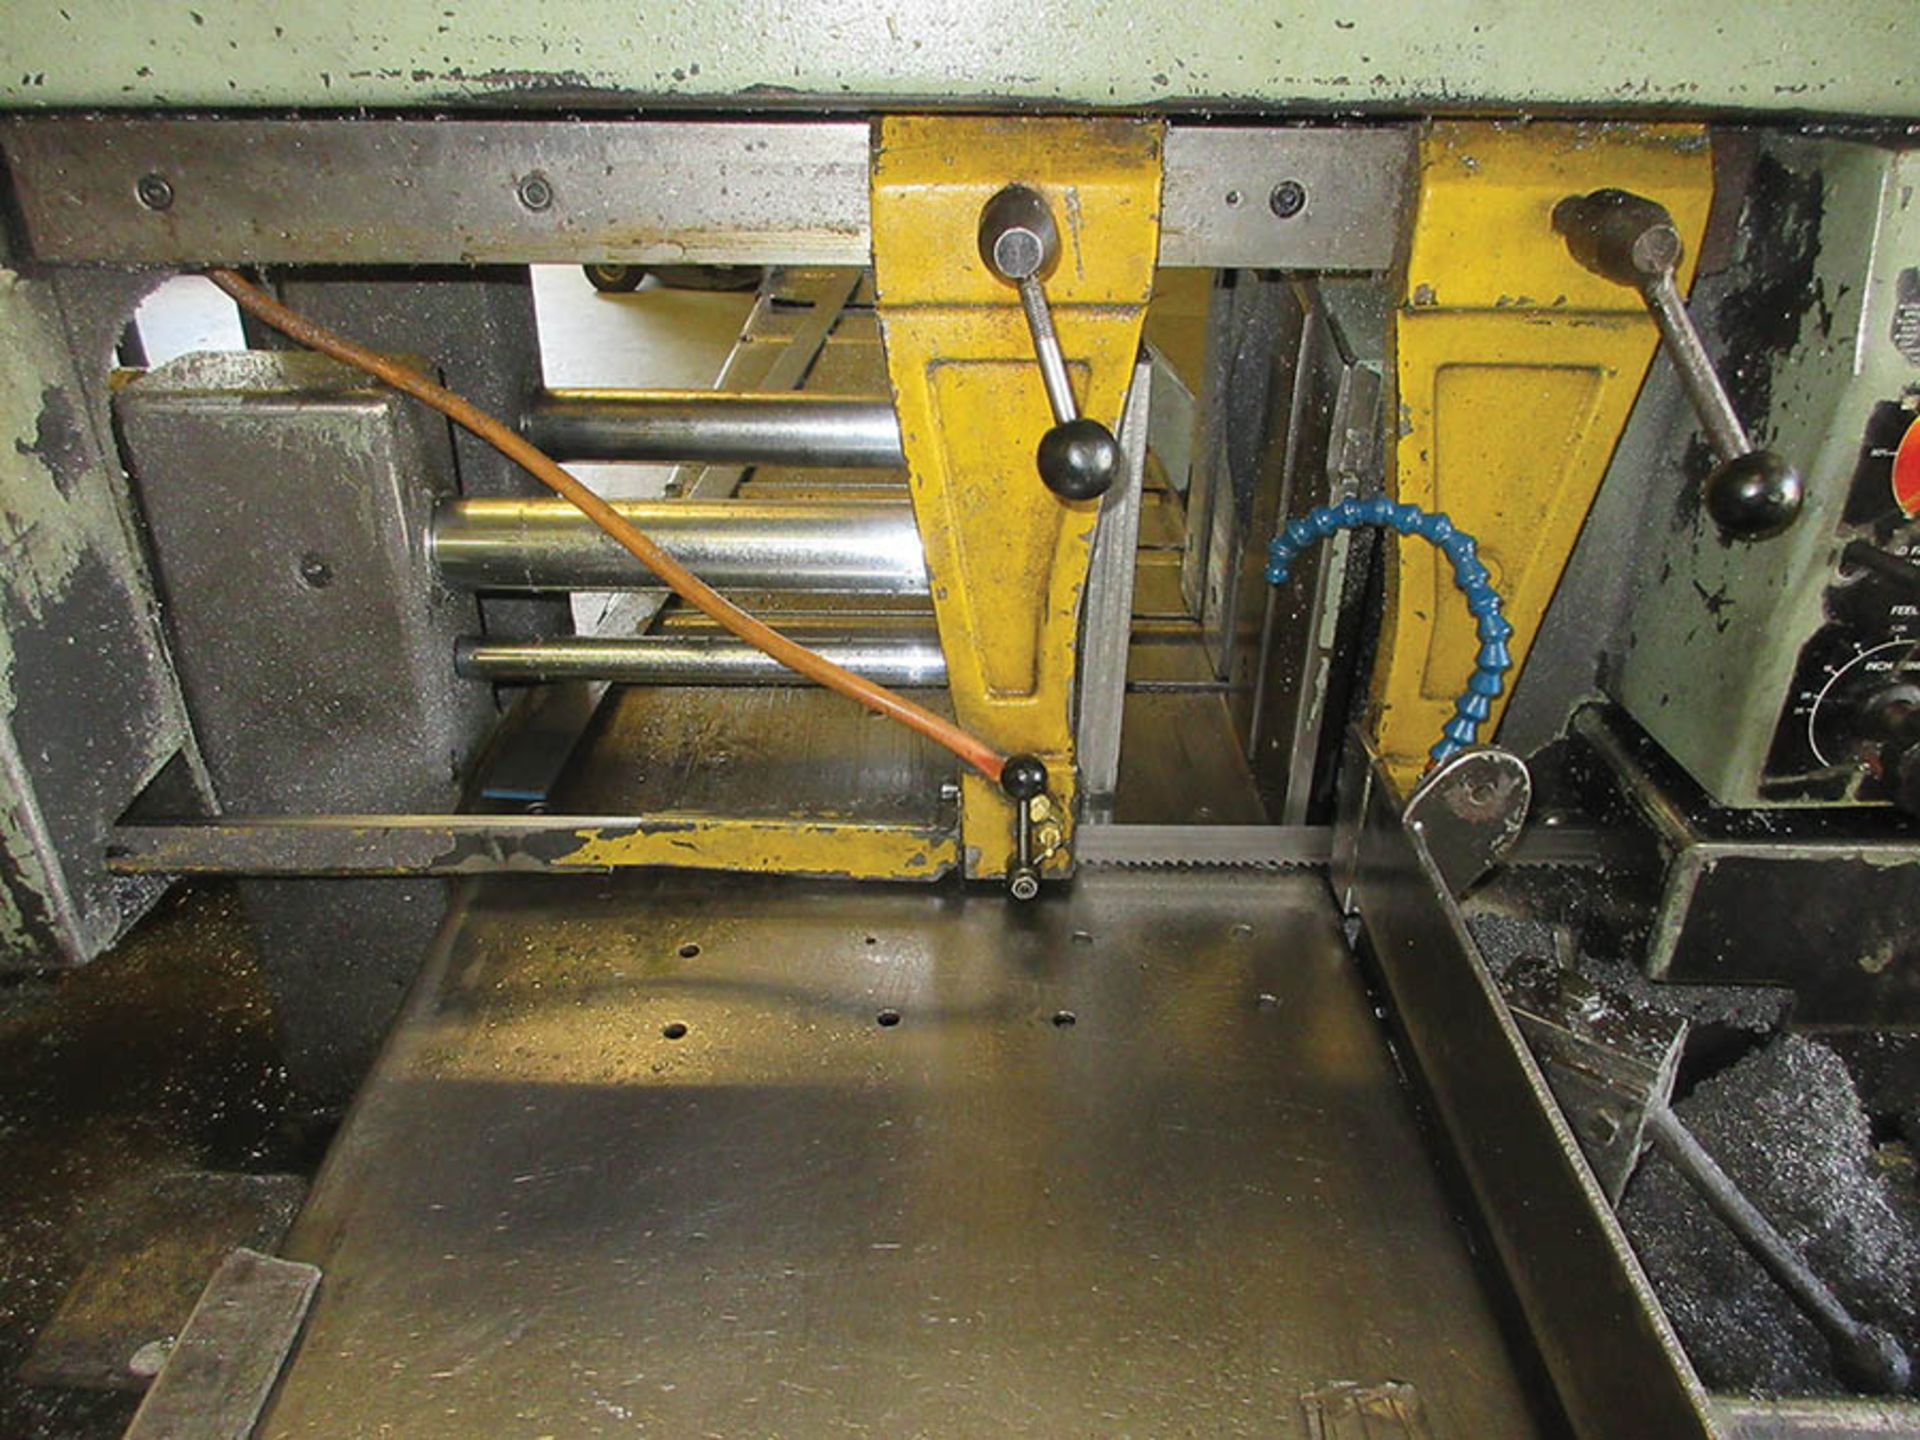 Lot 16 - HYD-MECH S-20A AUTOMATIC HORIZONTAL BAND SAW, S/N 80100800, APPROX. 20'' X 112'' FEED TABLE & 19'' X